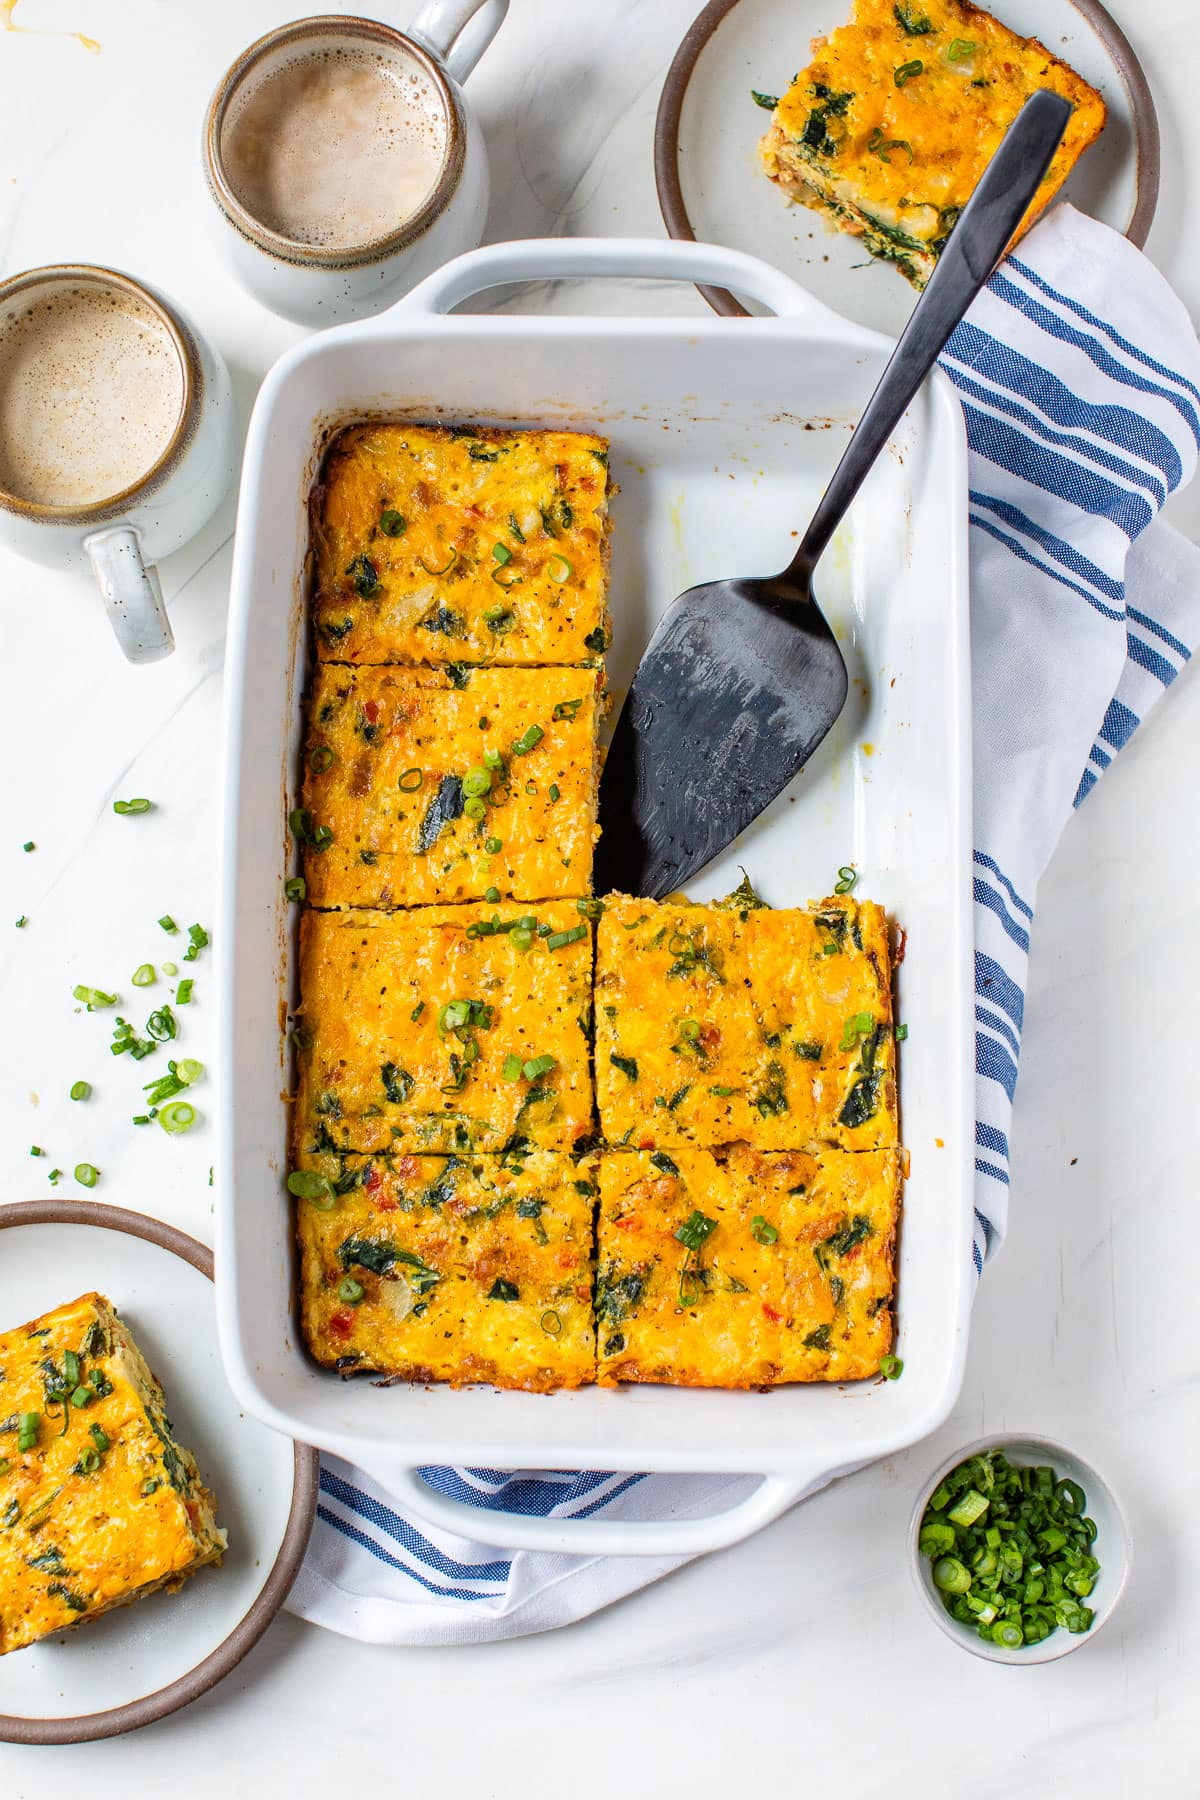 Healthy breakfast casserole in a baking dish